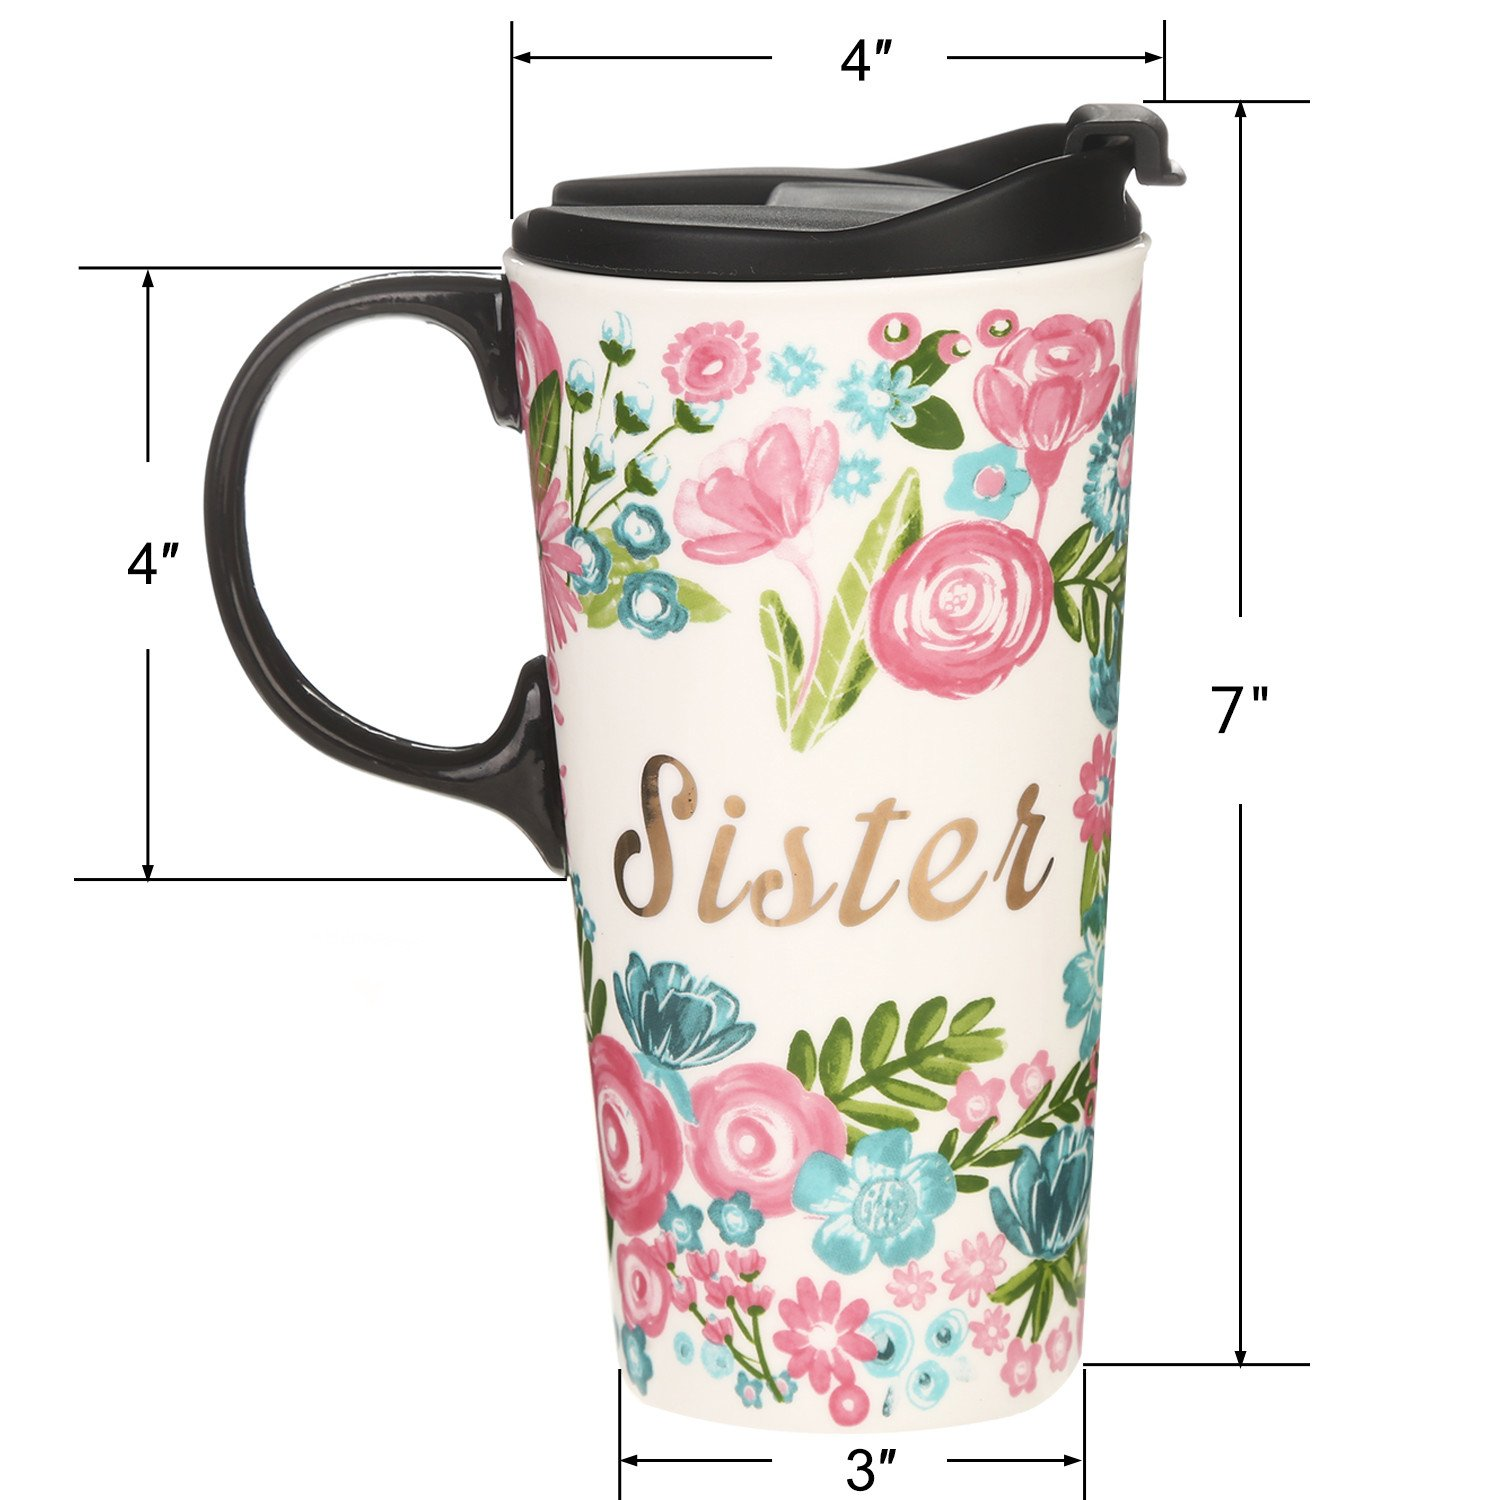 CEDAR HOME Travel Coffee Ceramic Mug Porcelain Latte Tea Cup With Lid in Gift Box 17oz. Sister & Friend, 2 Pack by CEDAR HOME (Image #5)